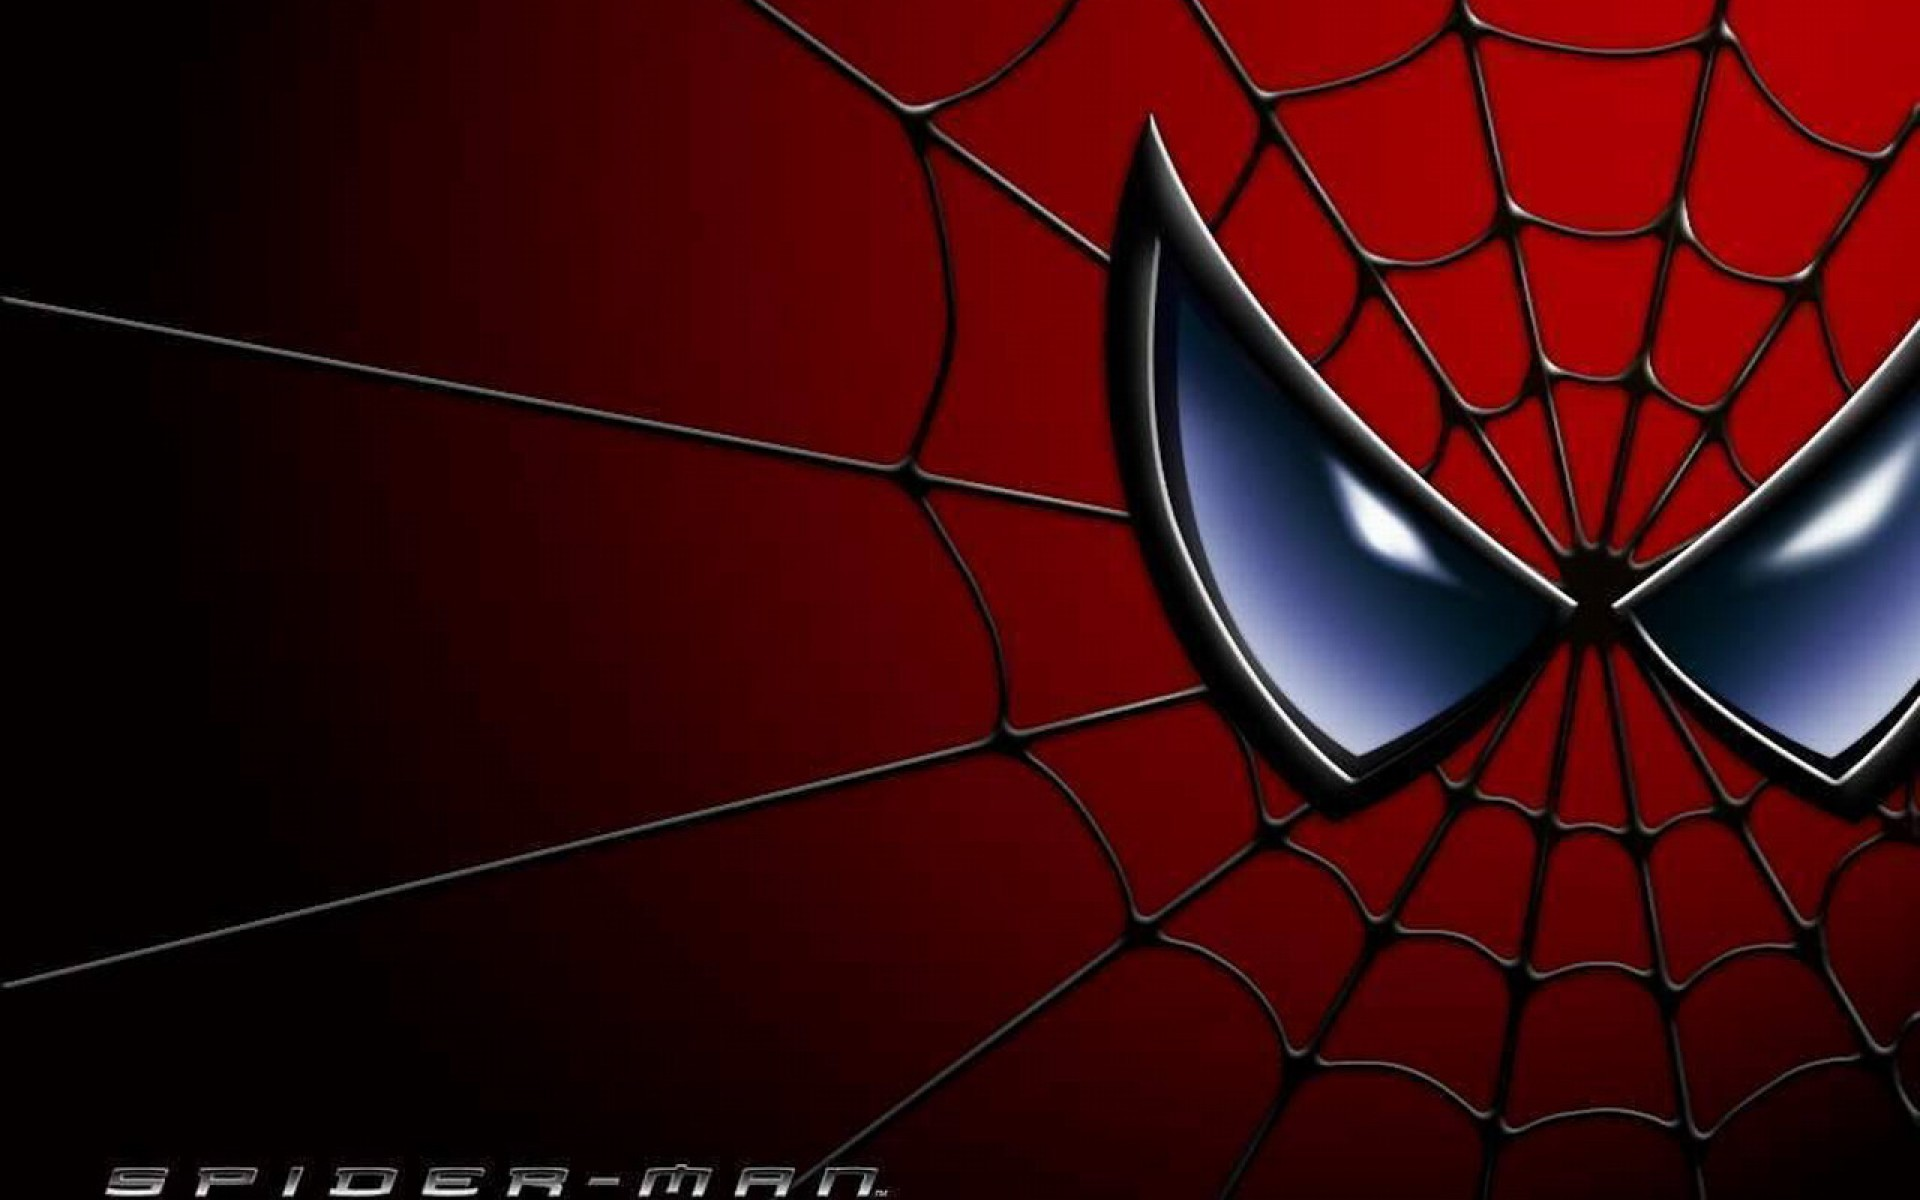 A Spiderman Logo Wallpaper For Desktop Background